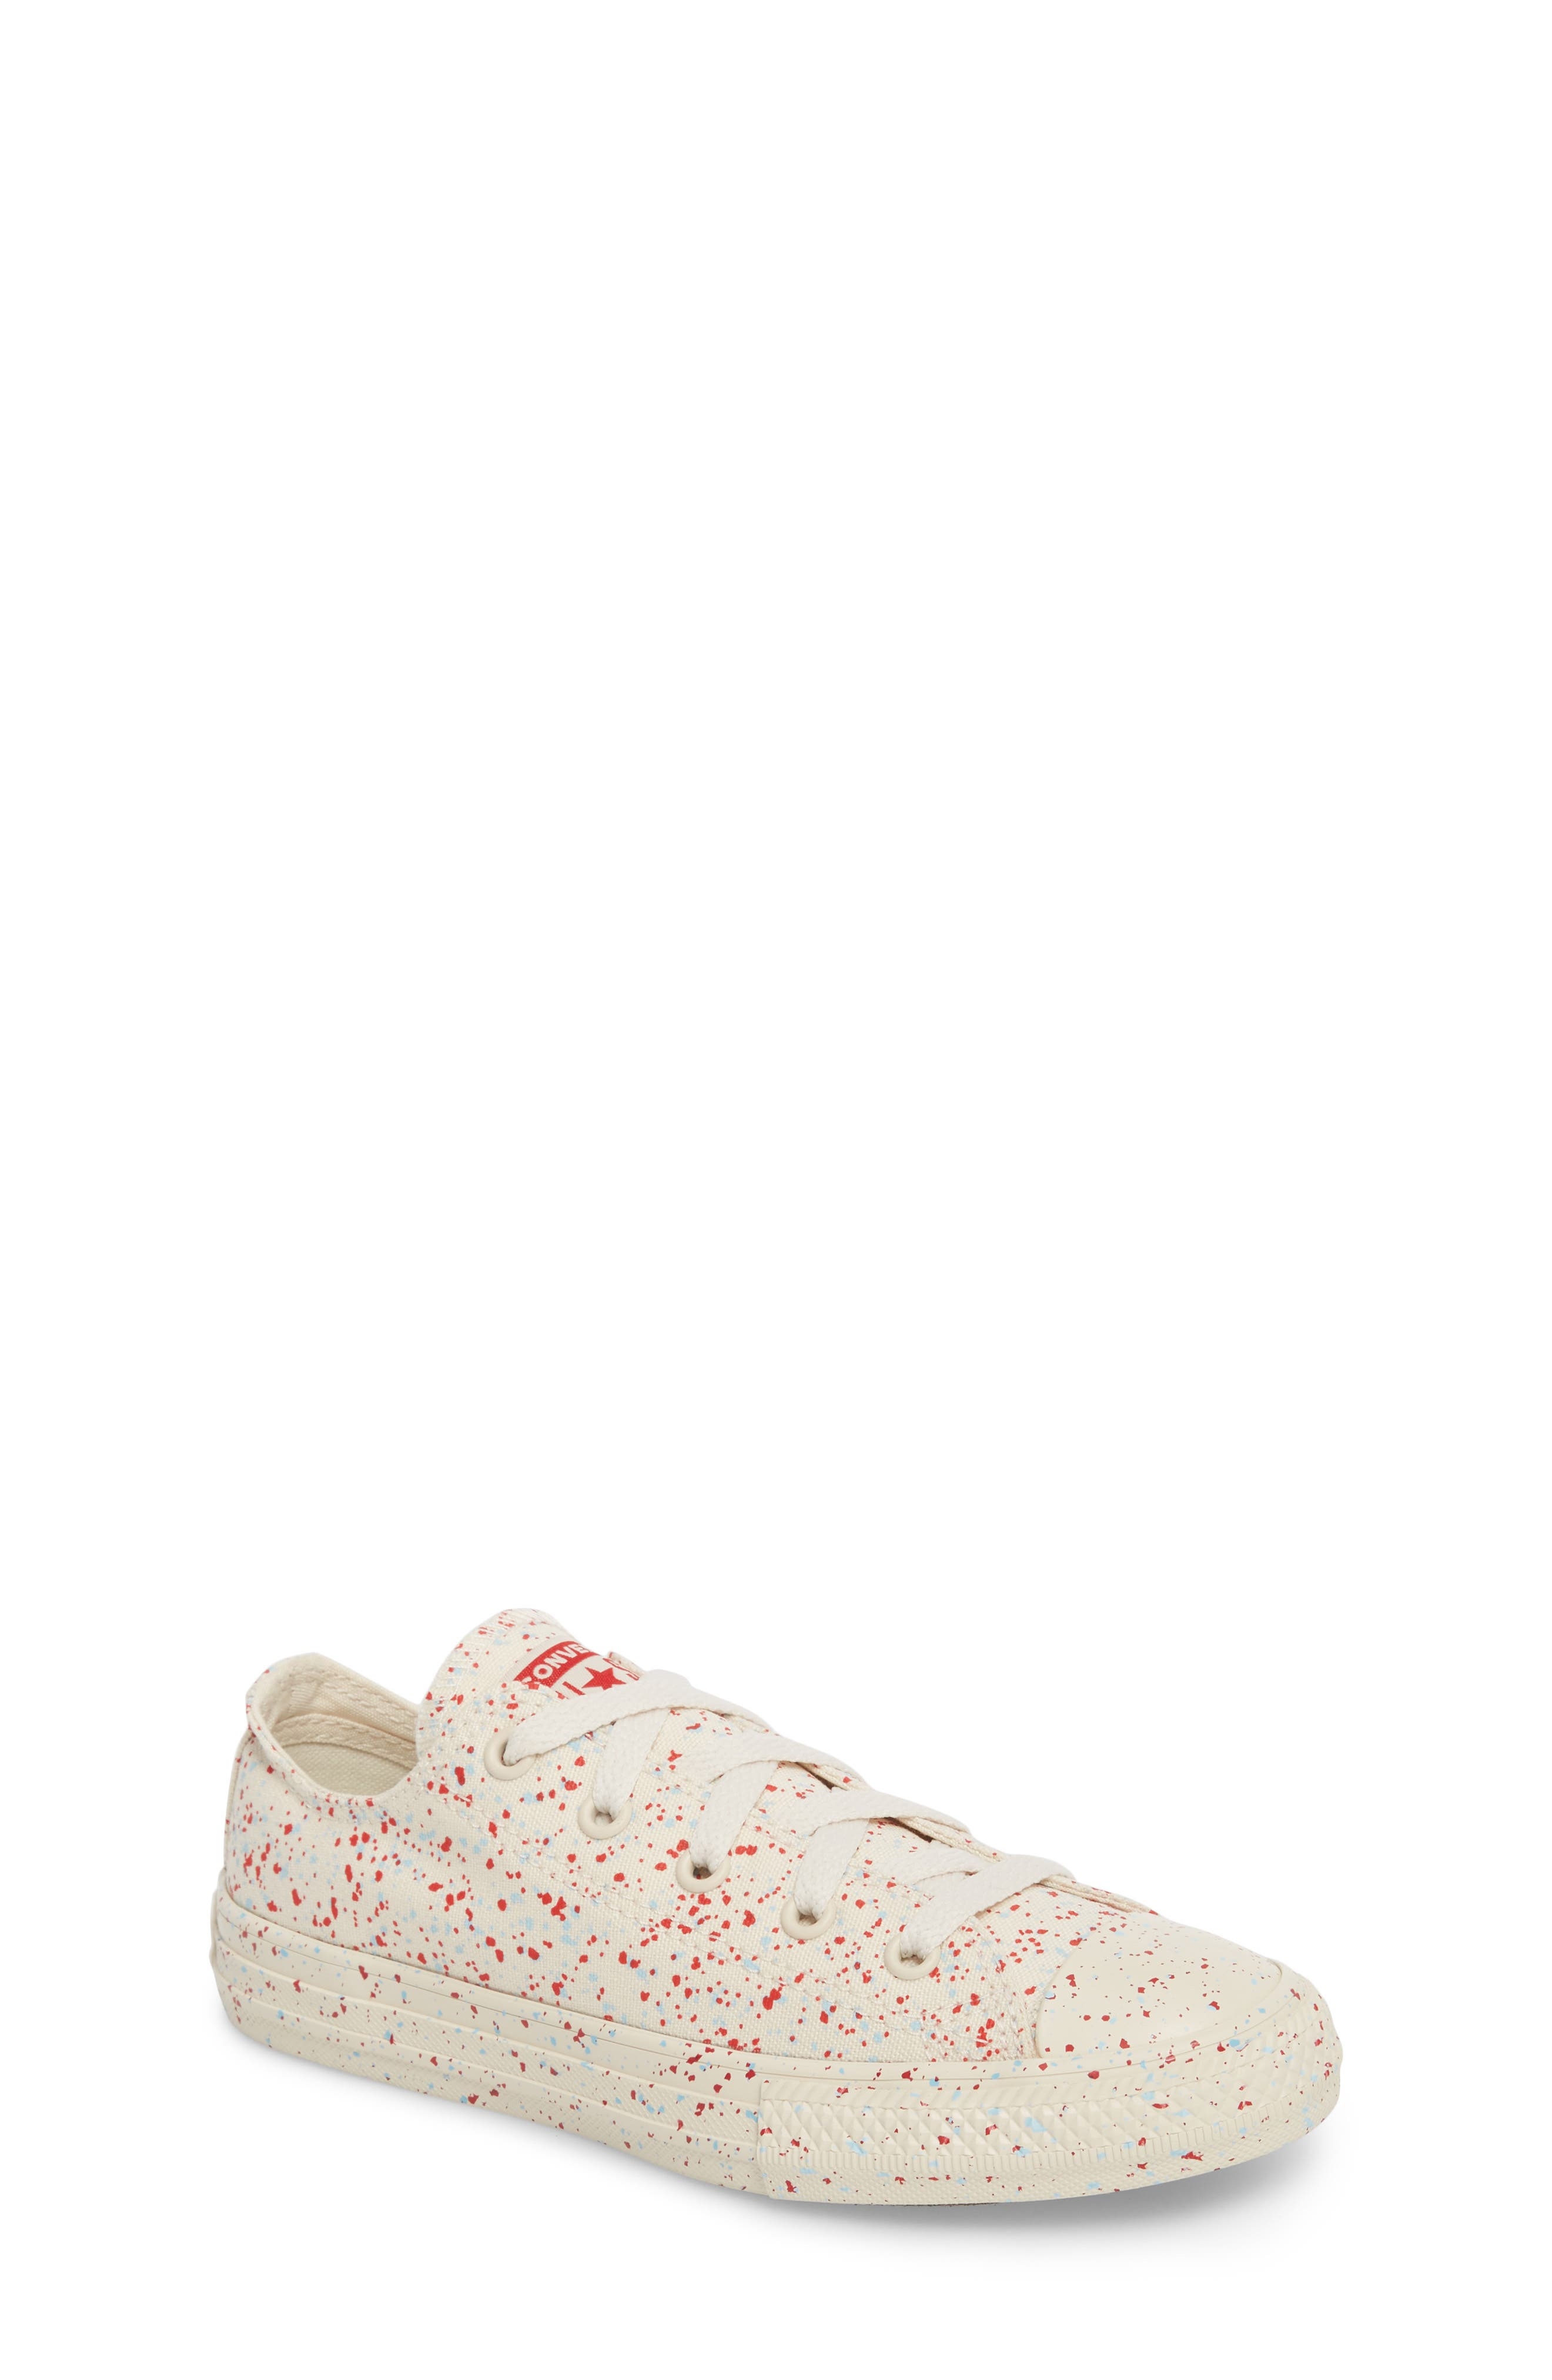 Chuck Taylor<sup>®</sup> All Star<sup>®</sup> Americana Speckle Oxford Sneaker,                             Main thumbnail 1, color,                             Driftwood